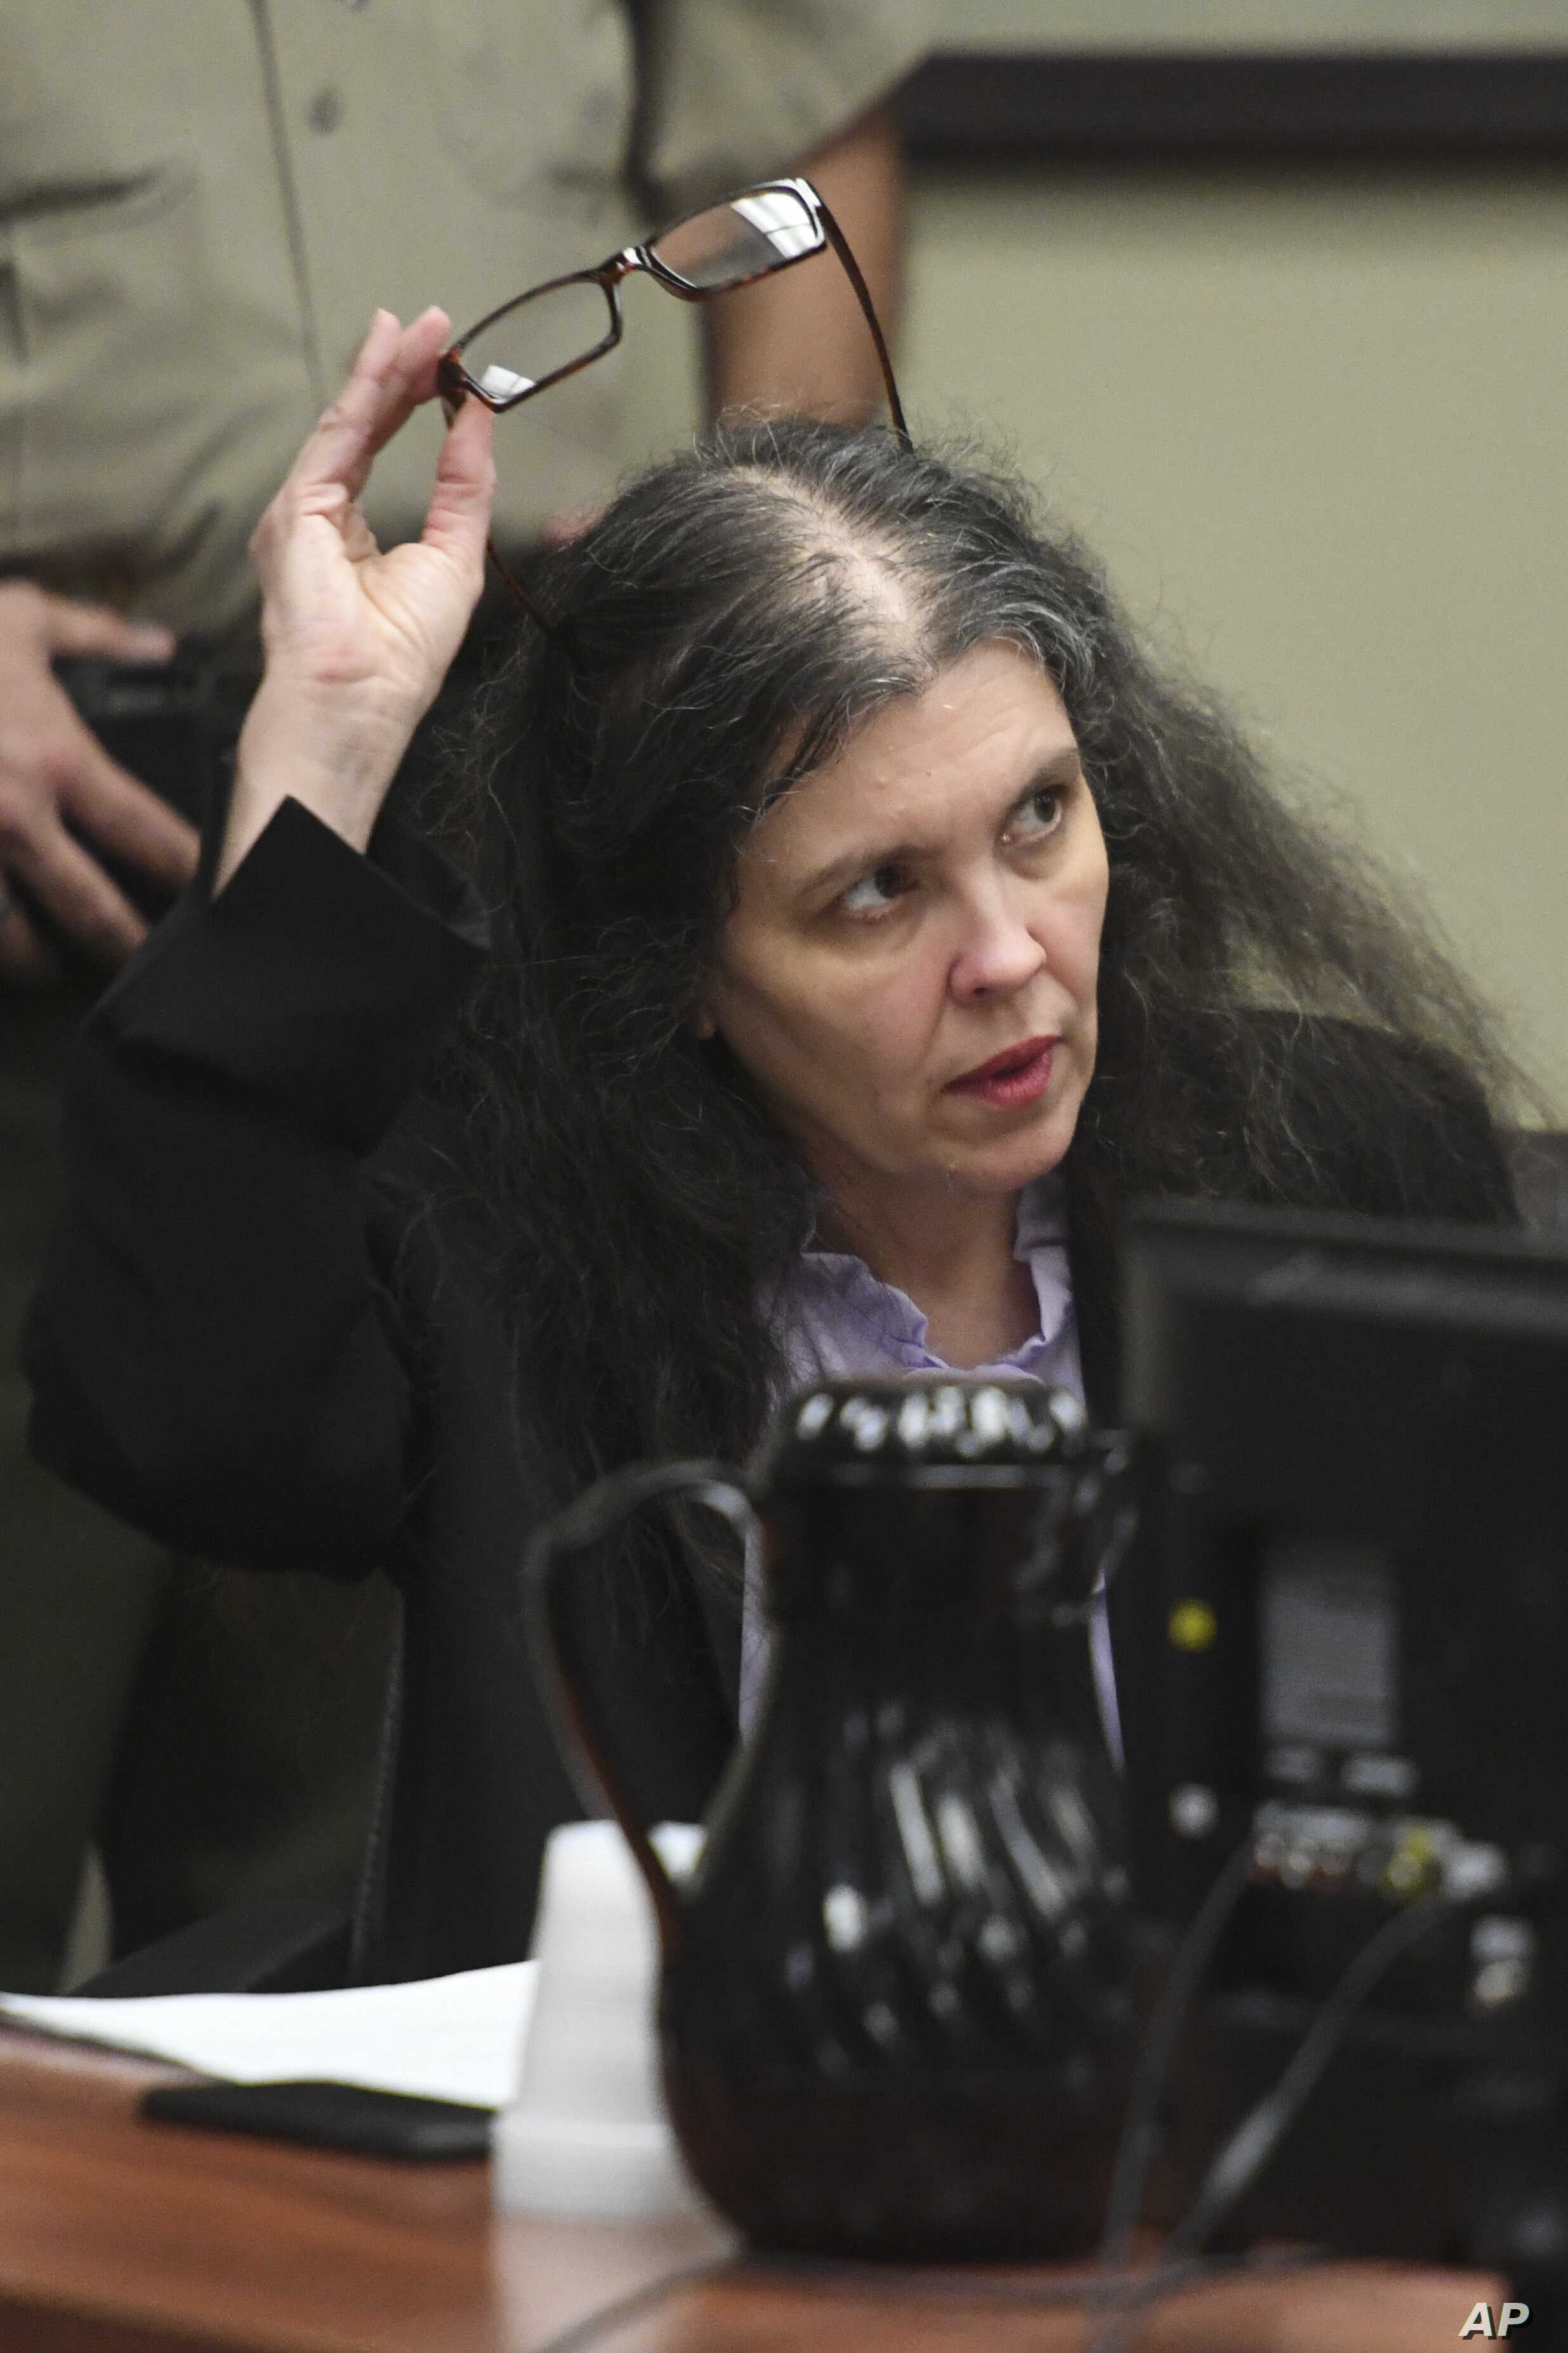 Louise Turpin listens to her attorney during a sentencing hearing, April 19, 2019, in Riverside, Calif. Turpin and her husband, David, pleaded guilty of neglect and abuse of 12 of their 13 children.